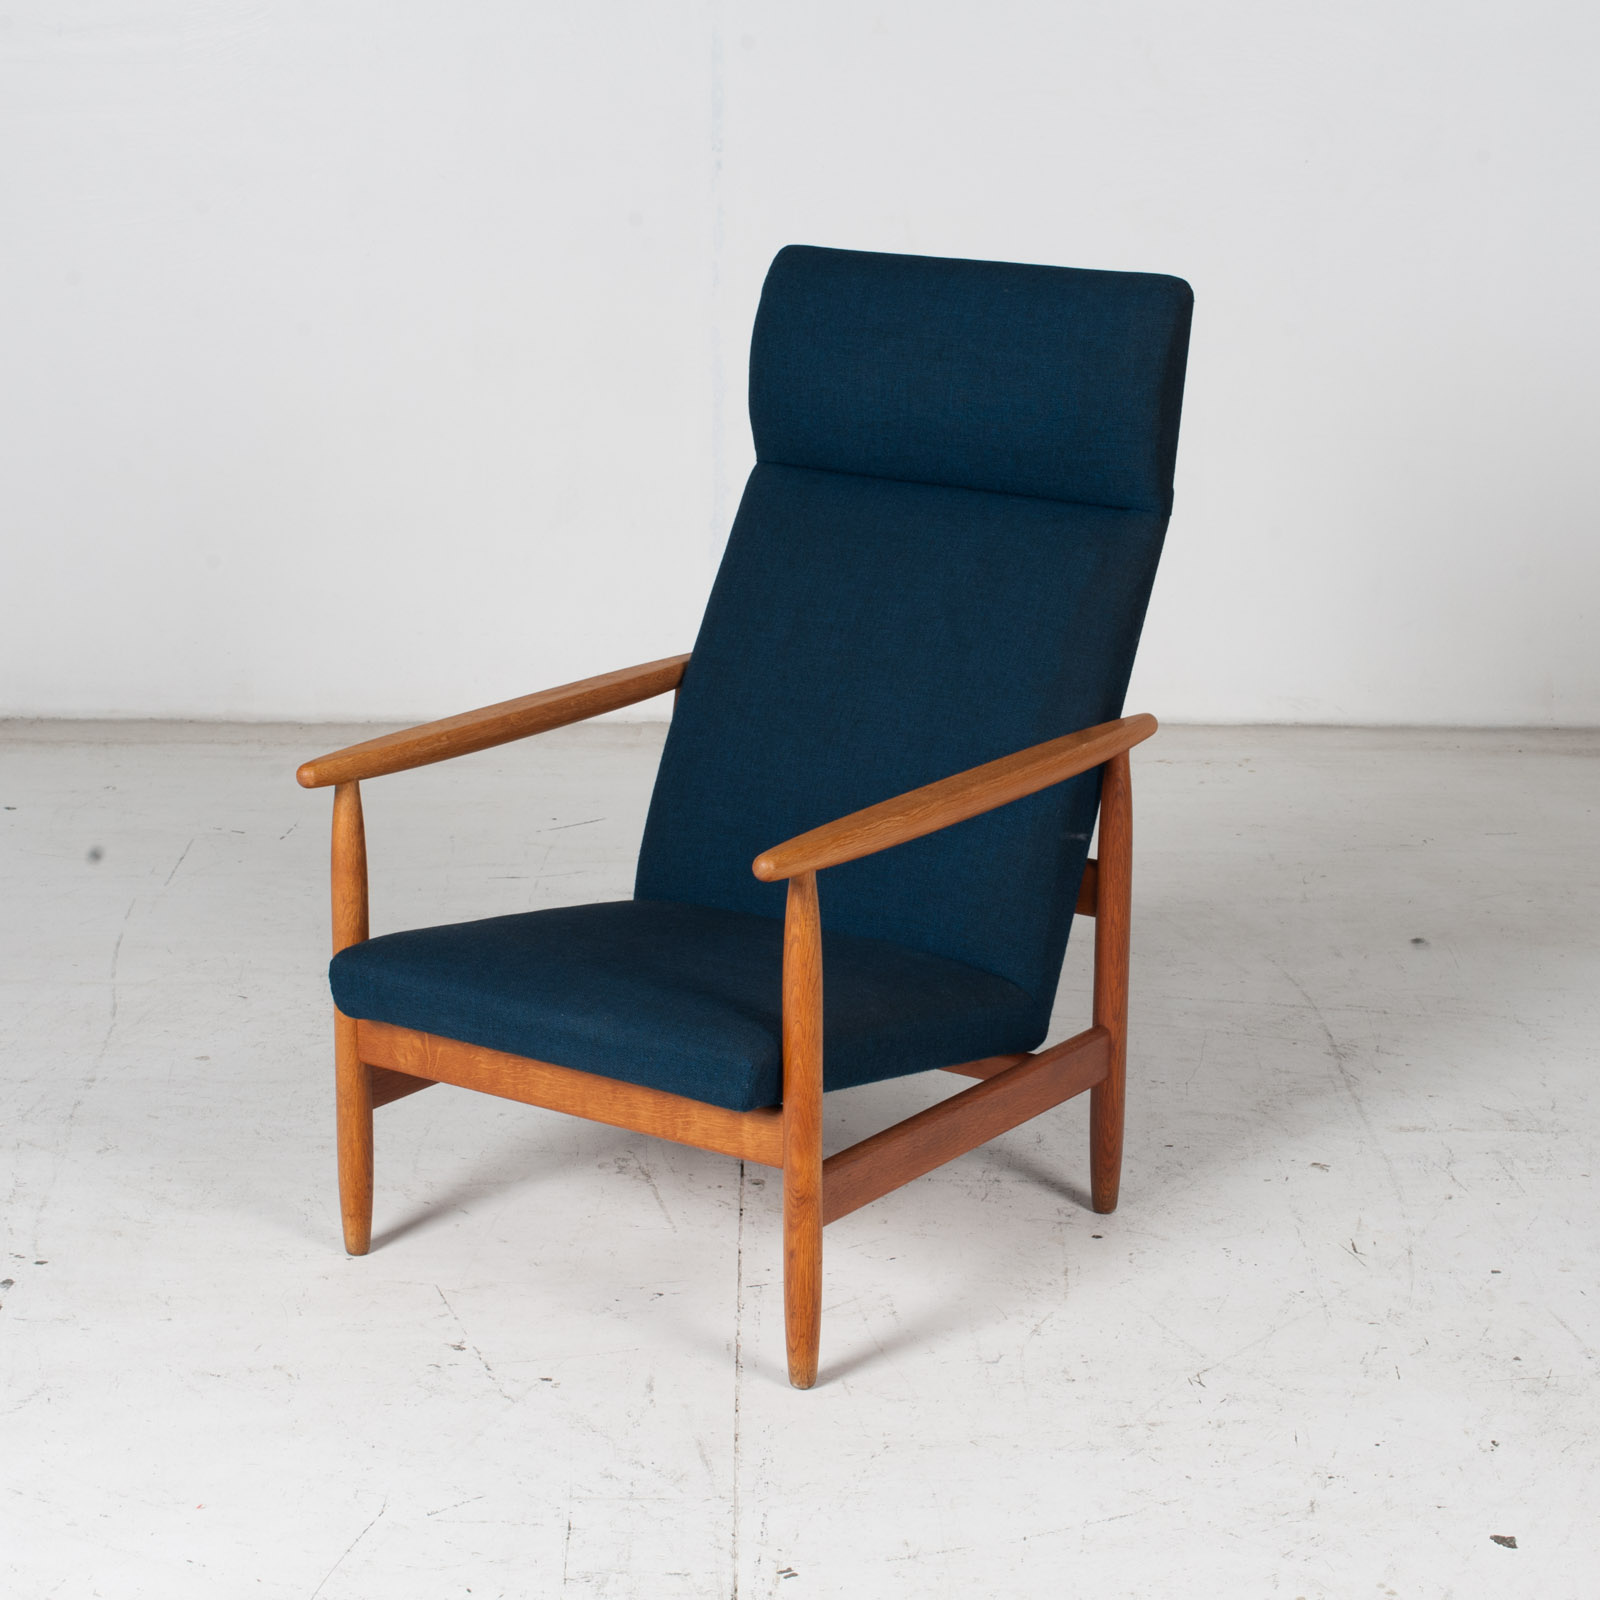 Armchair By Ejvind A. Johansson In Blue Upholstery, 1960s, Denmark4